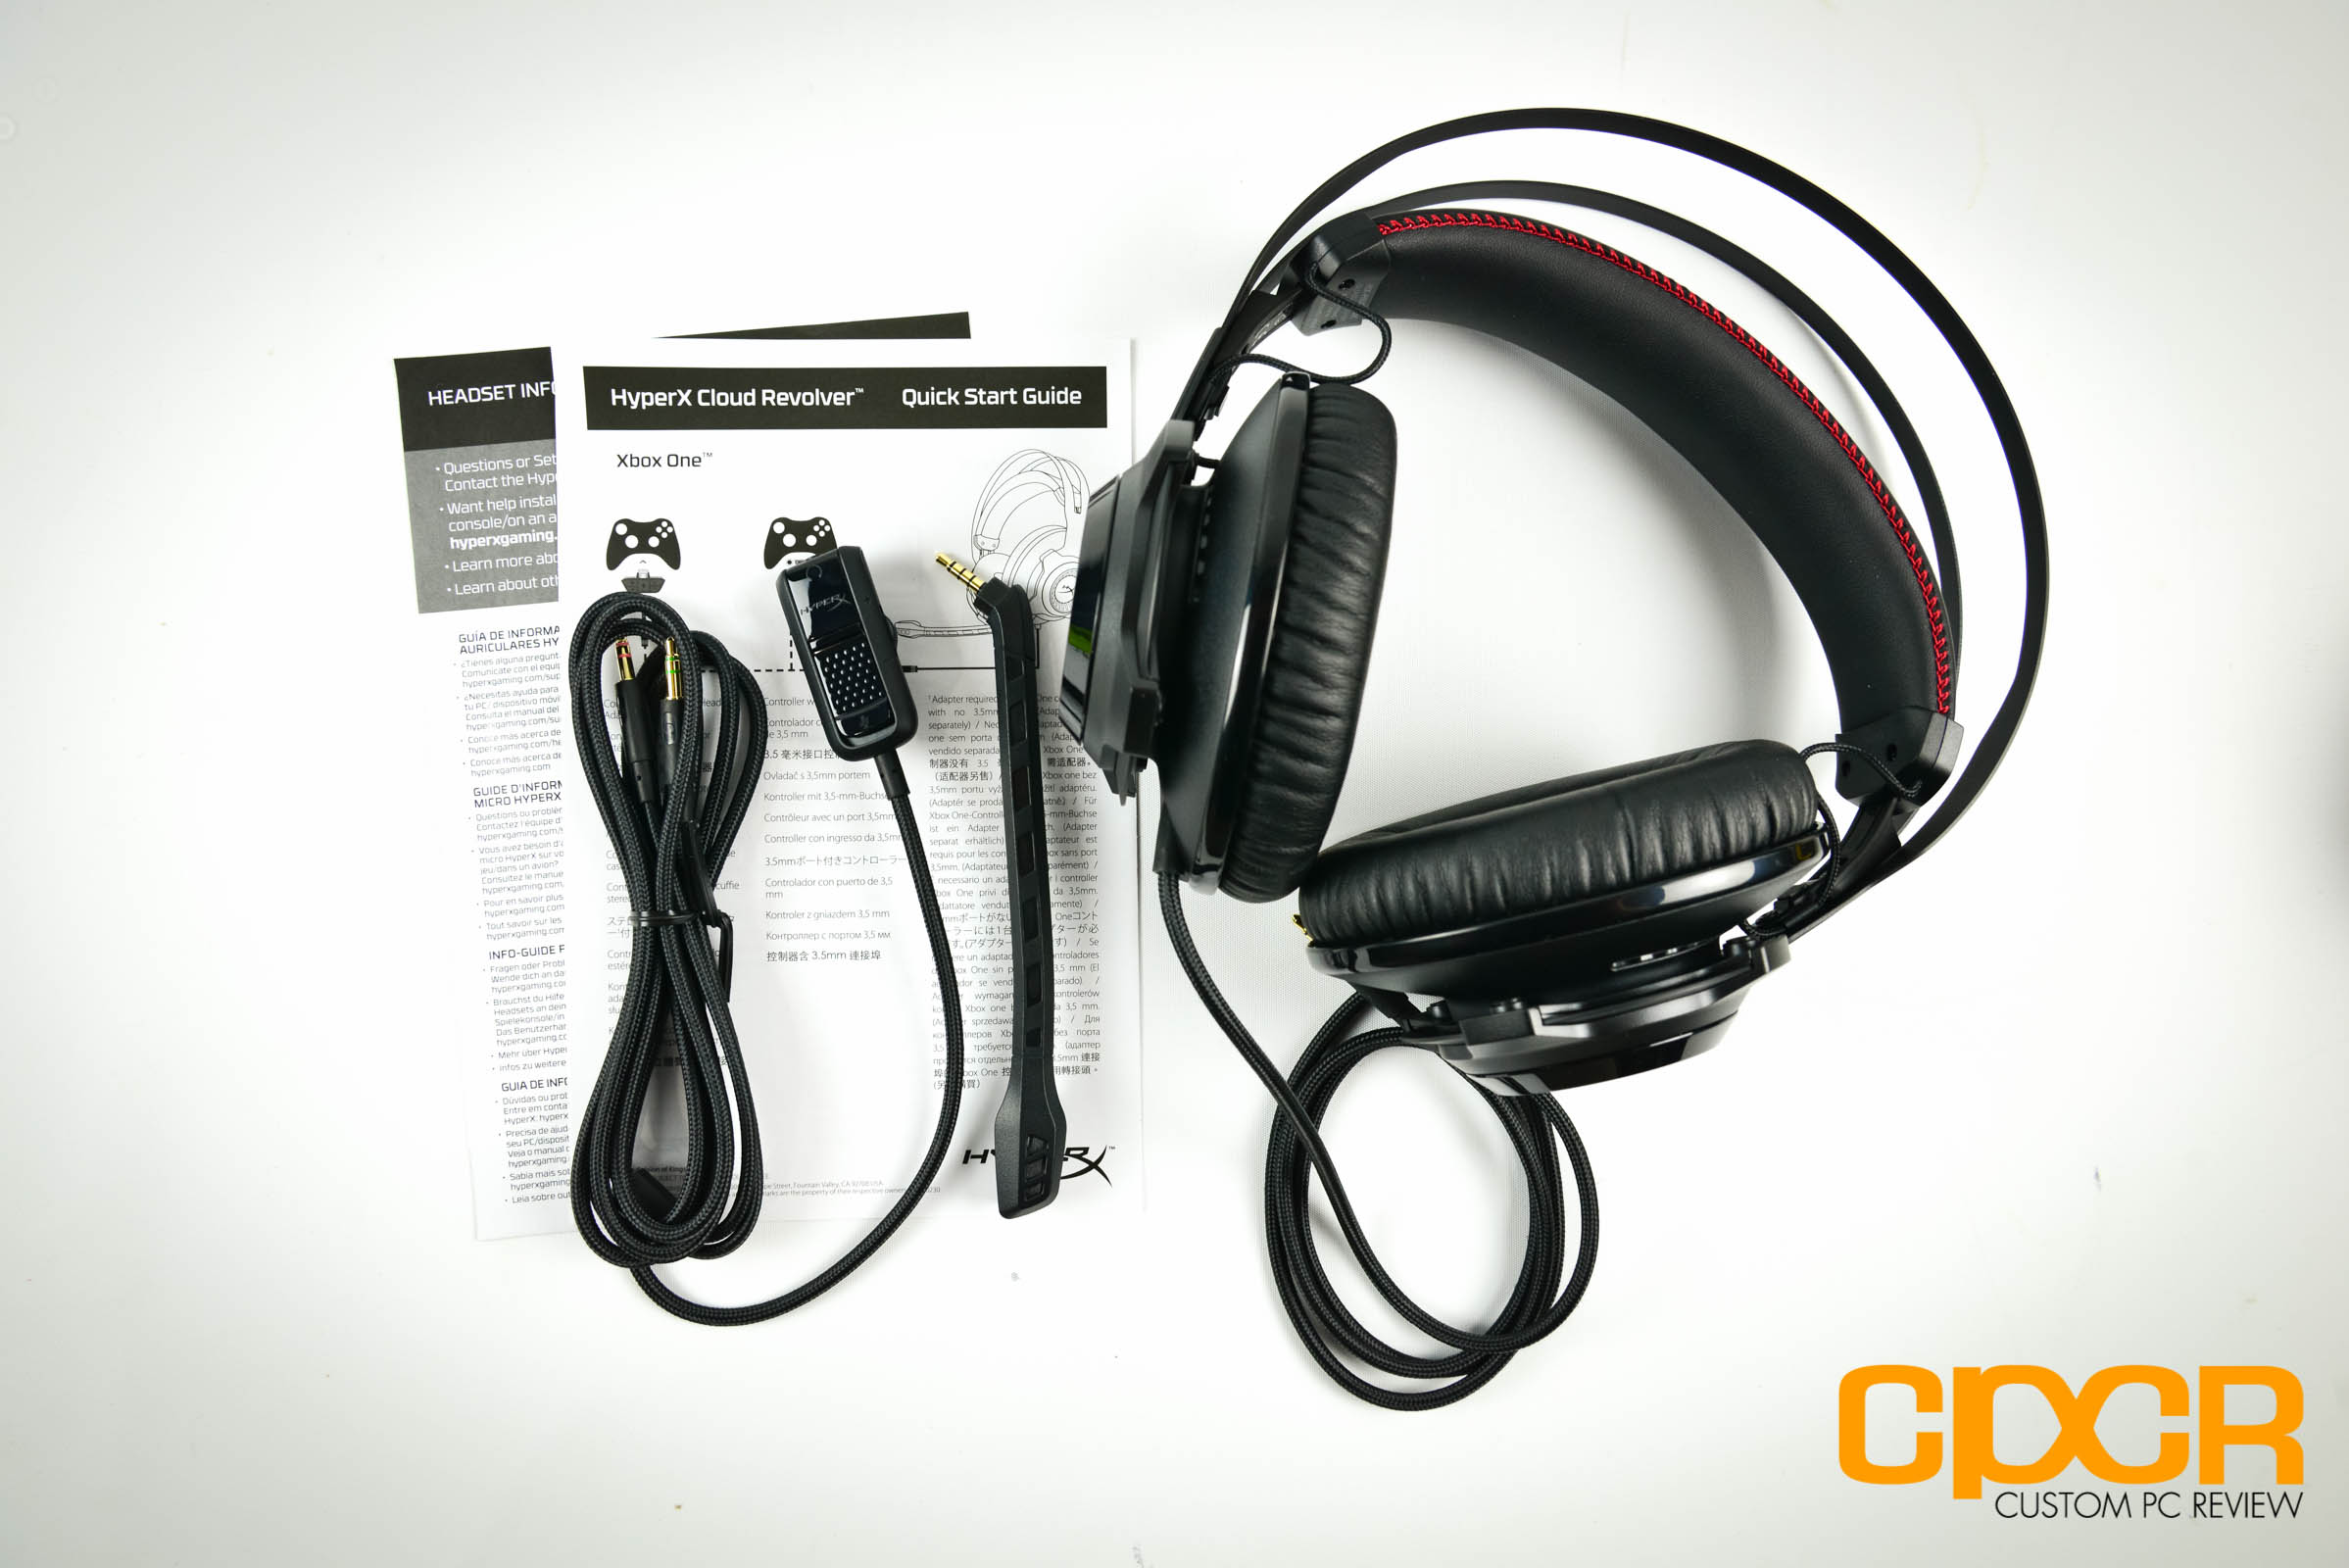 4eea1b75858 Review: HyperX Cloud Revolver Gaming Headset | Custom PC Review